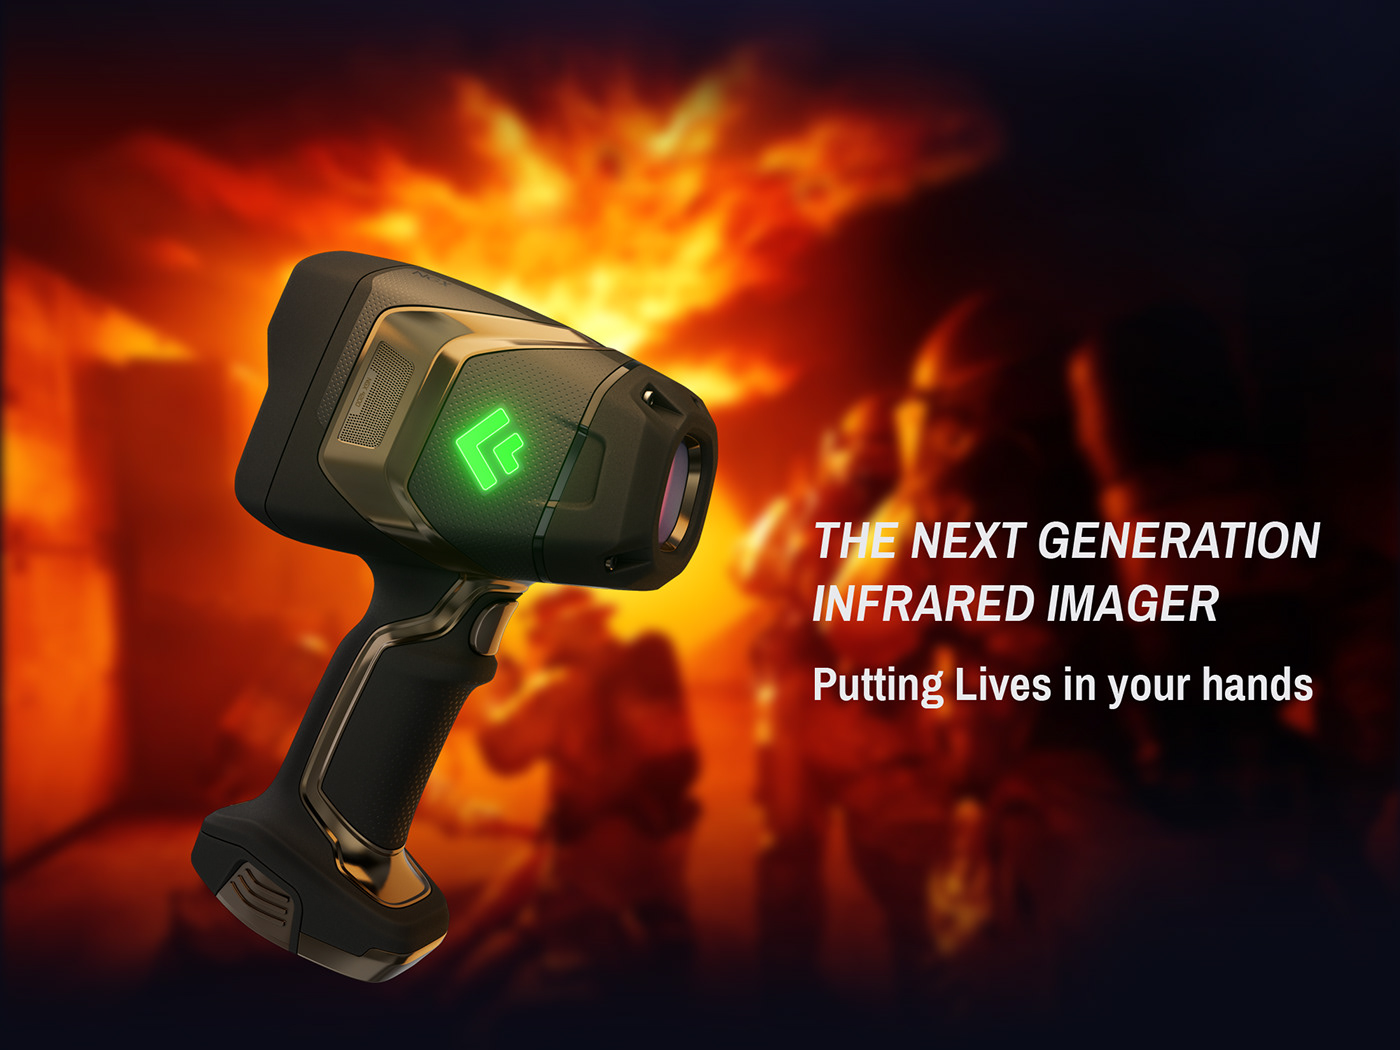 infrared imager Firefighter fire tool IRCamera Firstresponder rugged thermal camera